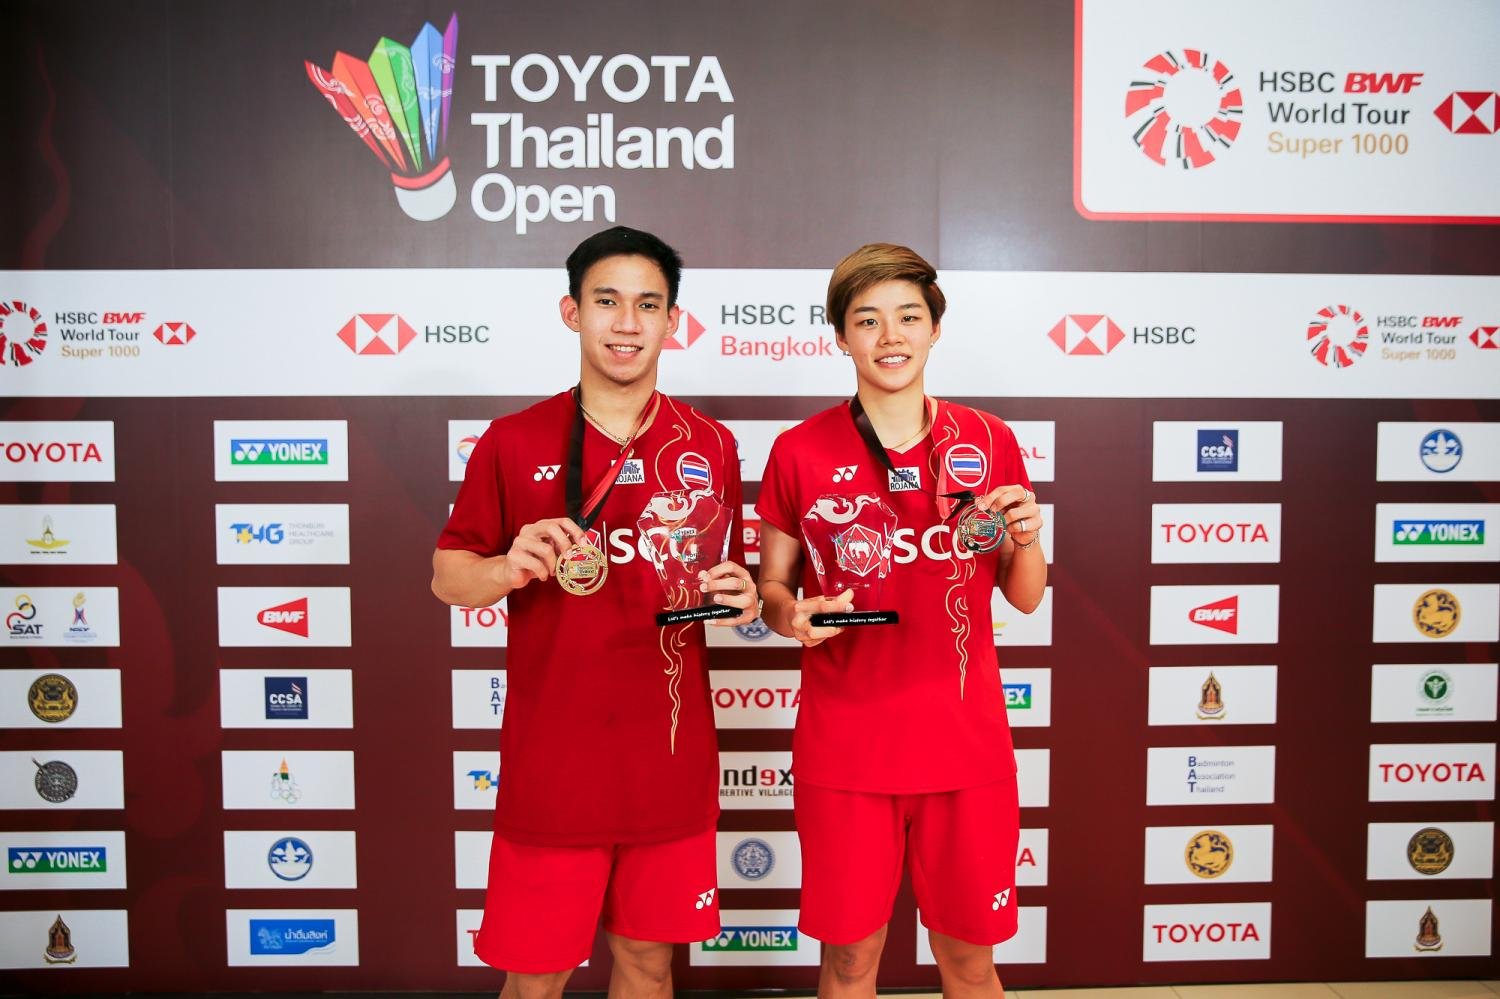 Dechapol Puavaranukroh (left) and Sapsiree Taerattanachai pose with their gold medals and trophies.